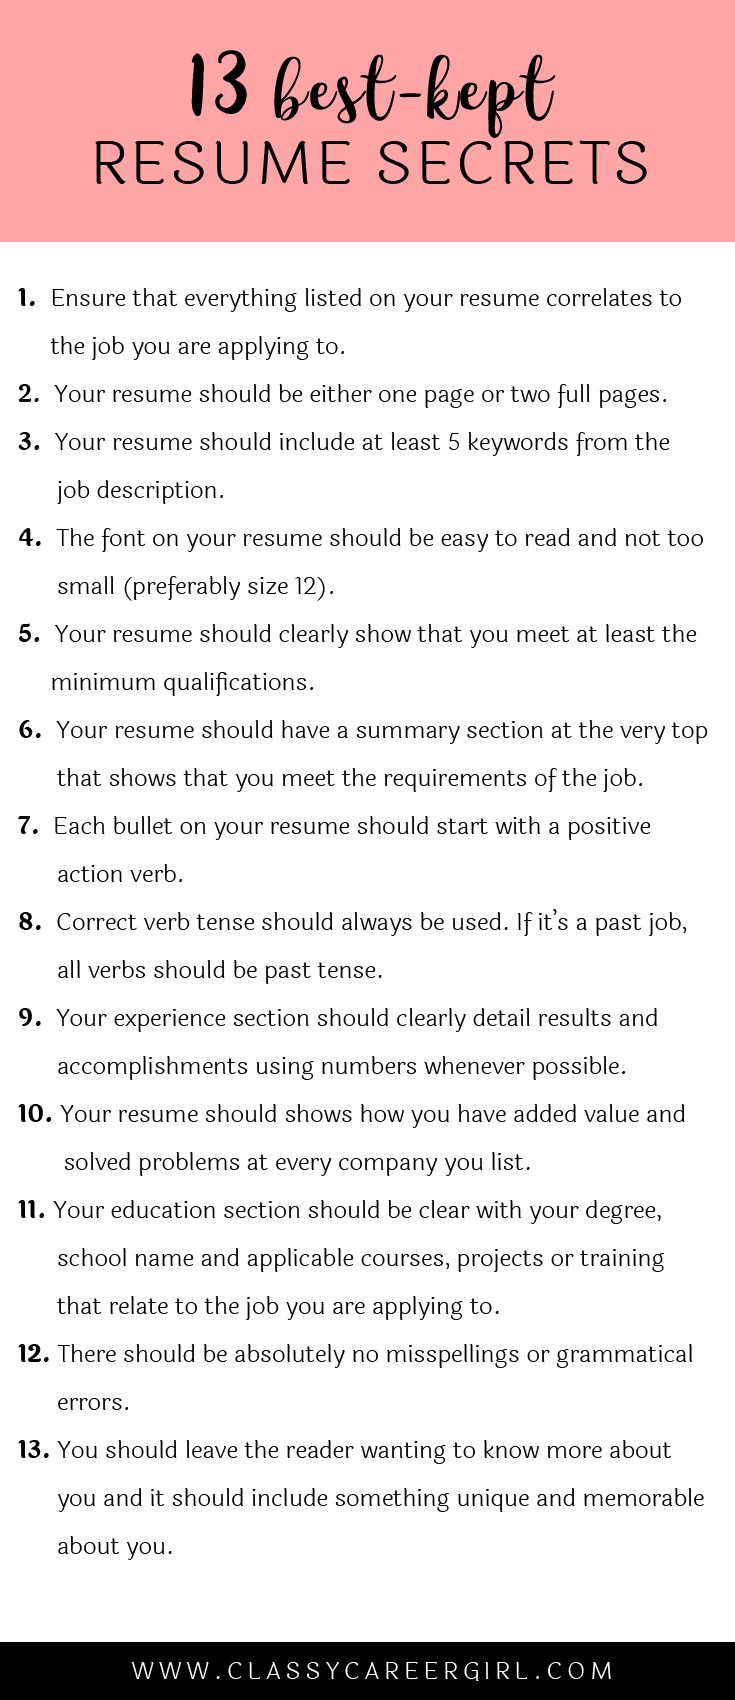 Opposenewapstandardsus  Seductive  Ideas About Resume On Pinterest  Cv Format Resume Cv And  With Lovable Some Hiring Managers Will Toss Your Resume Out If You Dont Know These  With Cute Winning Resumes Also What Does Designation Mean On A Resume In Addition Waitress Job Description Resume And Free Resume Software As Well As Education Resumes Additionally What Does A Cover Letter For A Resume Look Like From Pinterestcom With Opposenewapstandardsus  Lovable  Ideas About Resume On Pinterest  Cv Format Resume Cv And  With Cute Some Hiring Managers Will Toss Your Resume Out If You Dont Know These  And Seductive Winning Resumes Also What Does Designation Mean On A Resume In Addition Waitress Job Description Resume From Pinterestcom